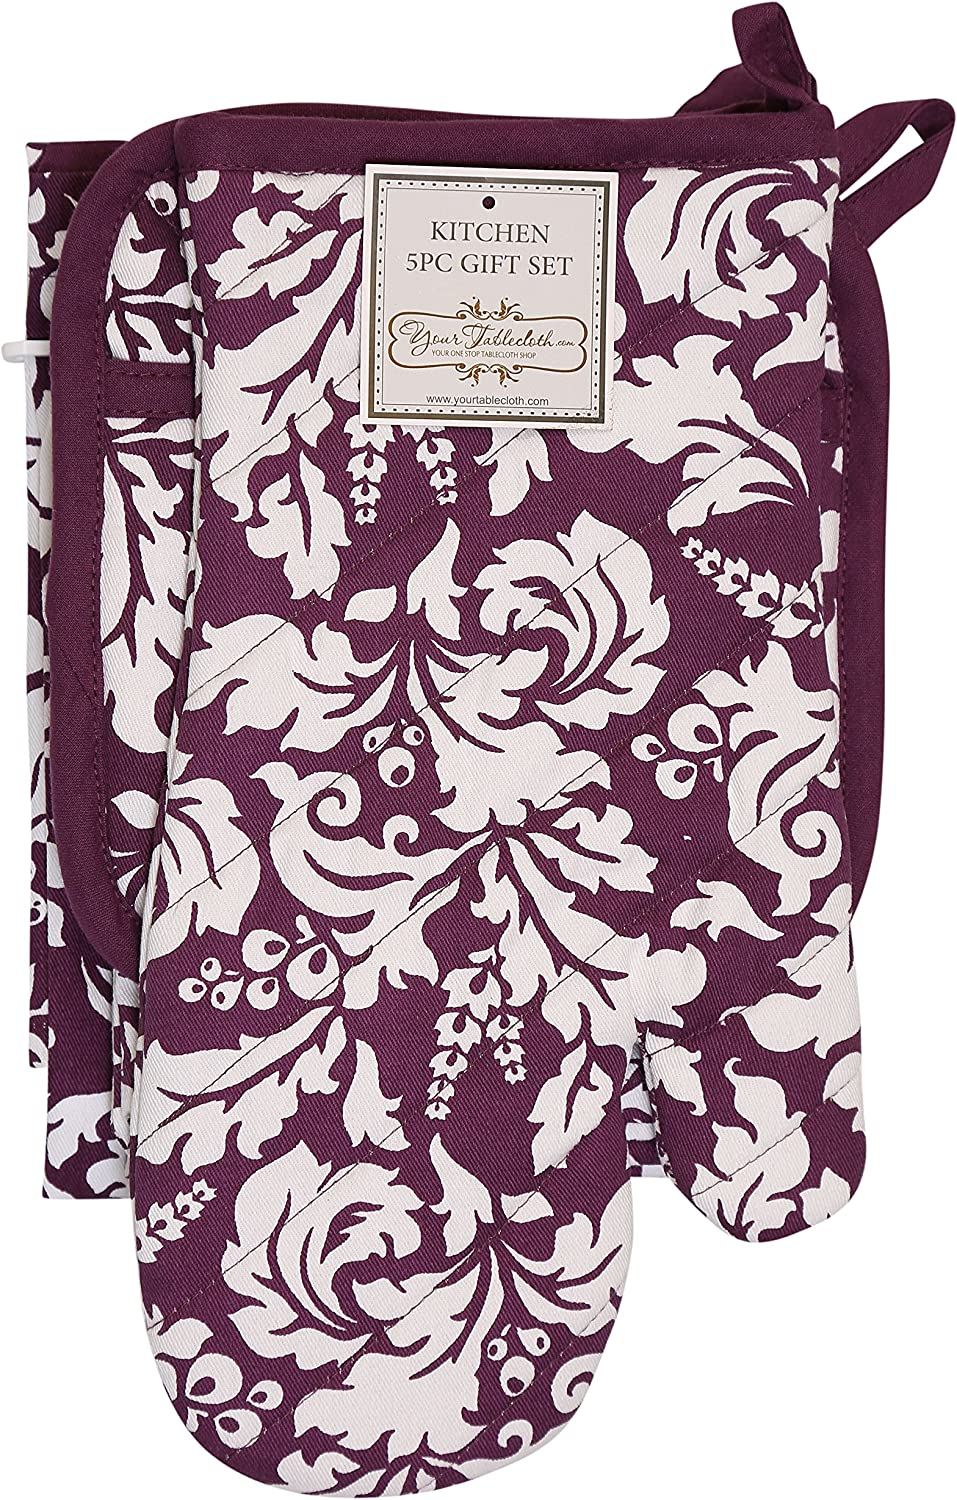 an Oven Mitt /& A Pot Holder-2 Kitchen Dish Towels or Tea Towels-Ideal Cooking Gifts or Gift Ideas for Chefs-Suitable for Men /& Women-Chocolate Yourtablecloth Kitchen Gift Set-1 Kitchen Apron